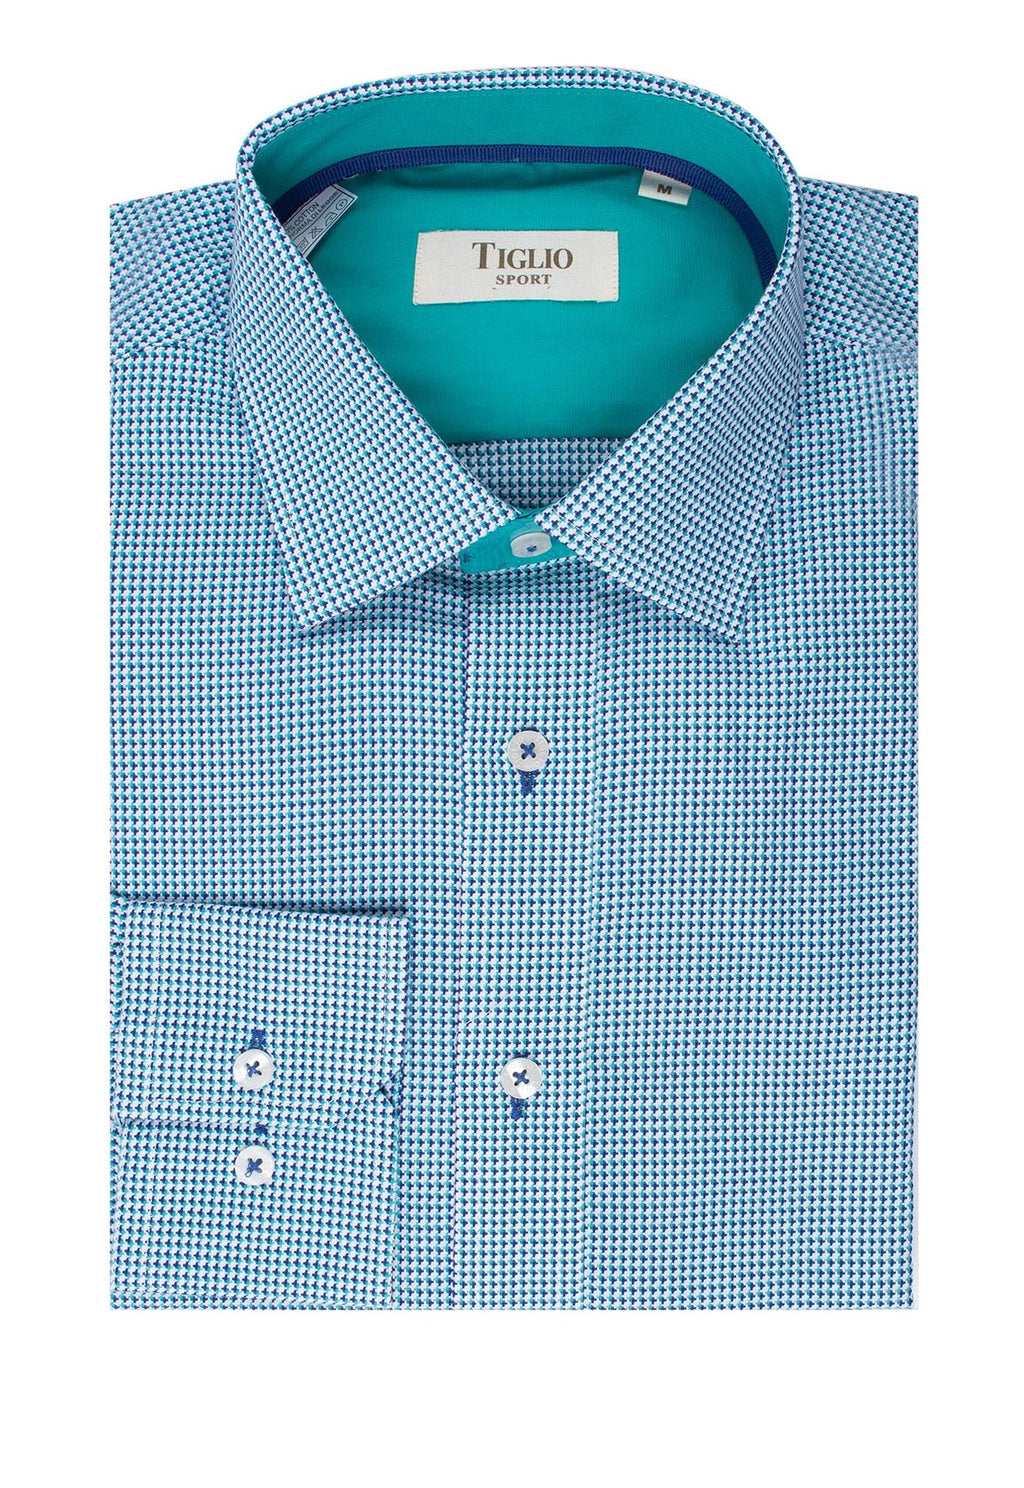 Tiglio Sport Turquoise and Navy Design Modern Fit Sport Shirt FS3419/2